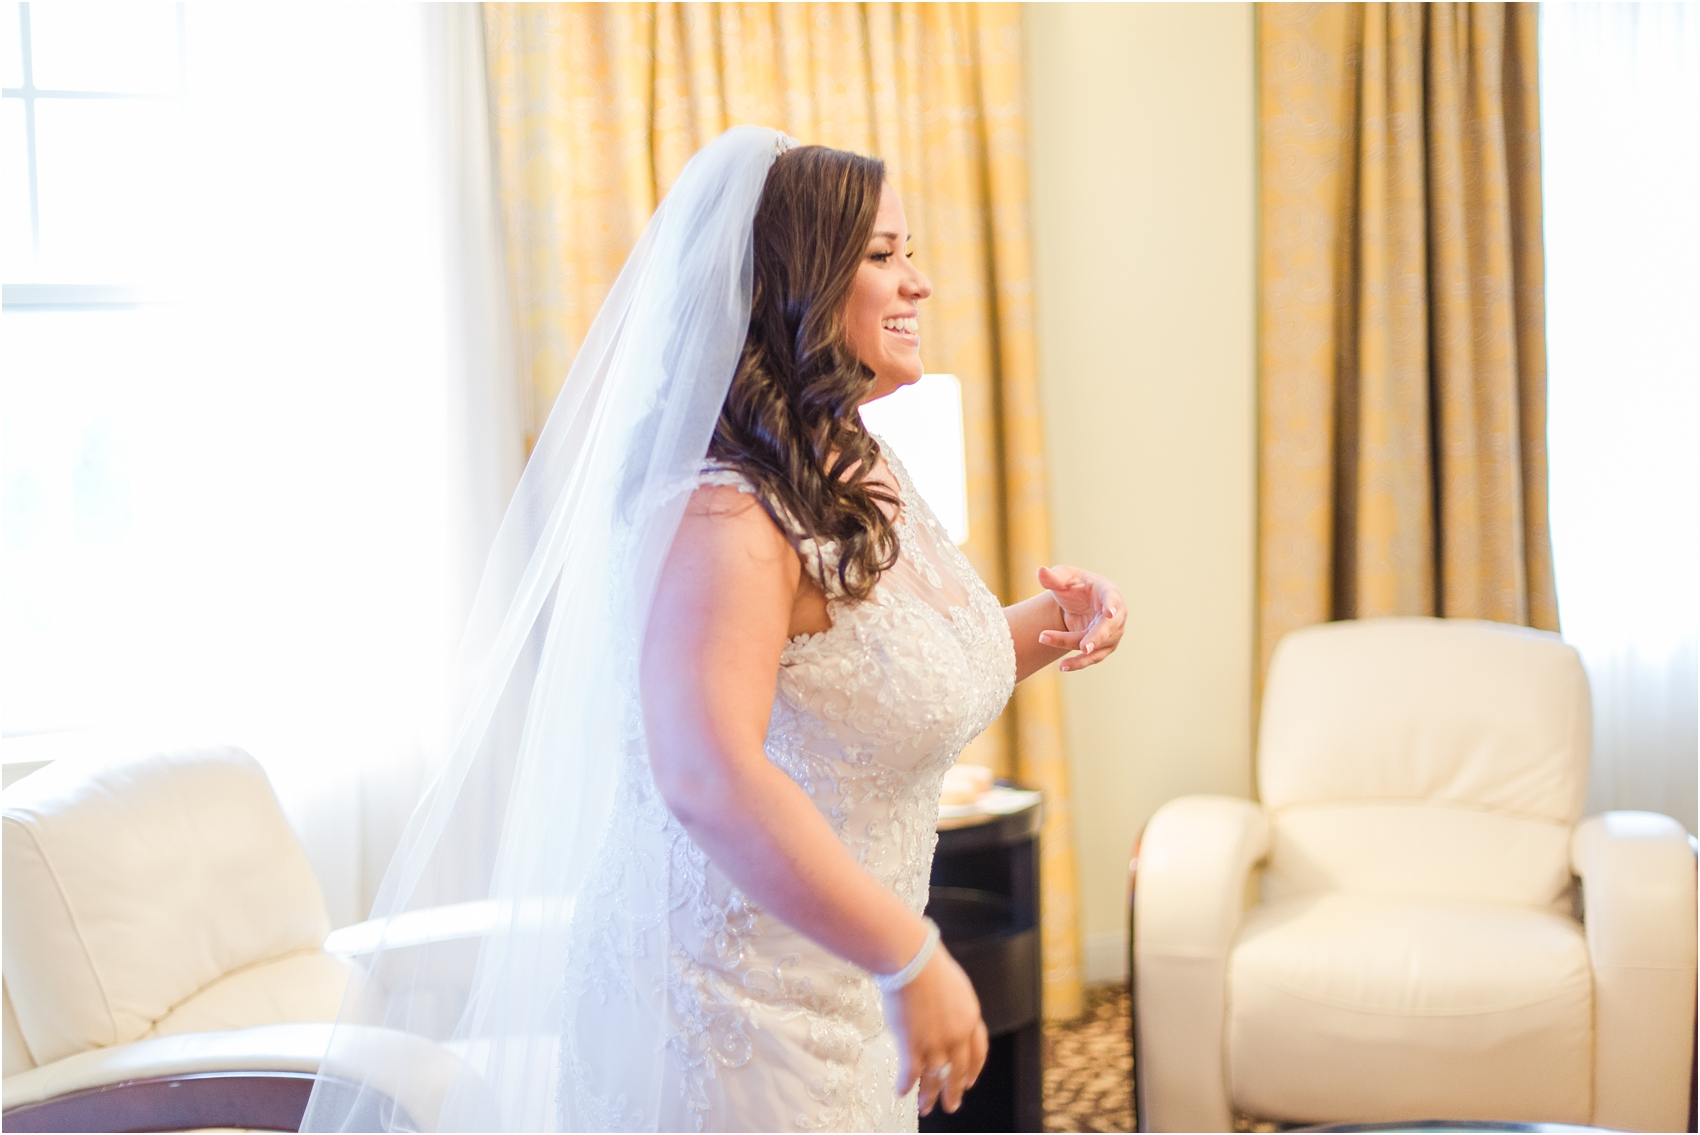 father-and-bride-share-emotional-first-look-on-wedding-day-photos-in-detroit-michigan-by-courtney-carolyn-photography_0048.jpg